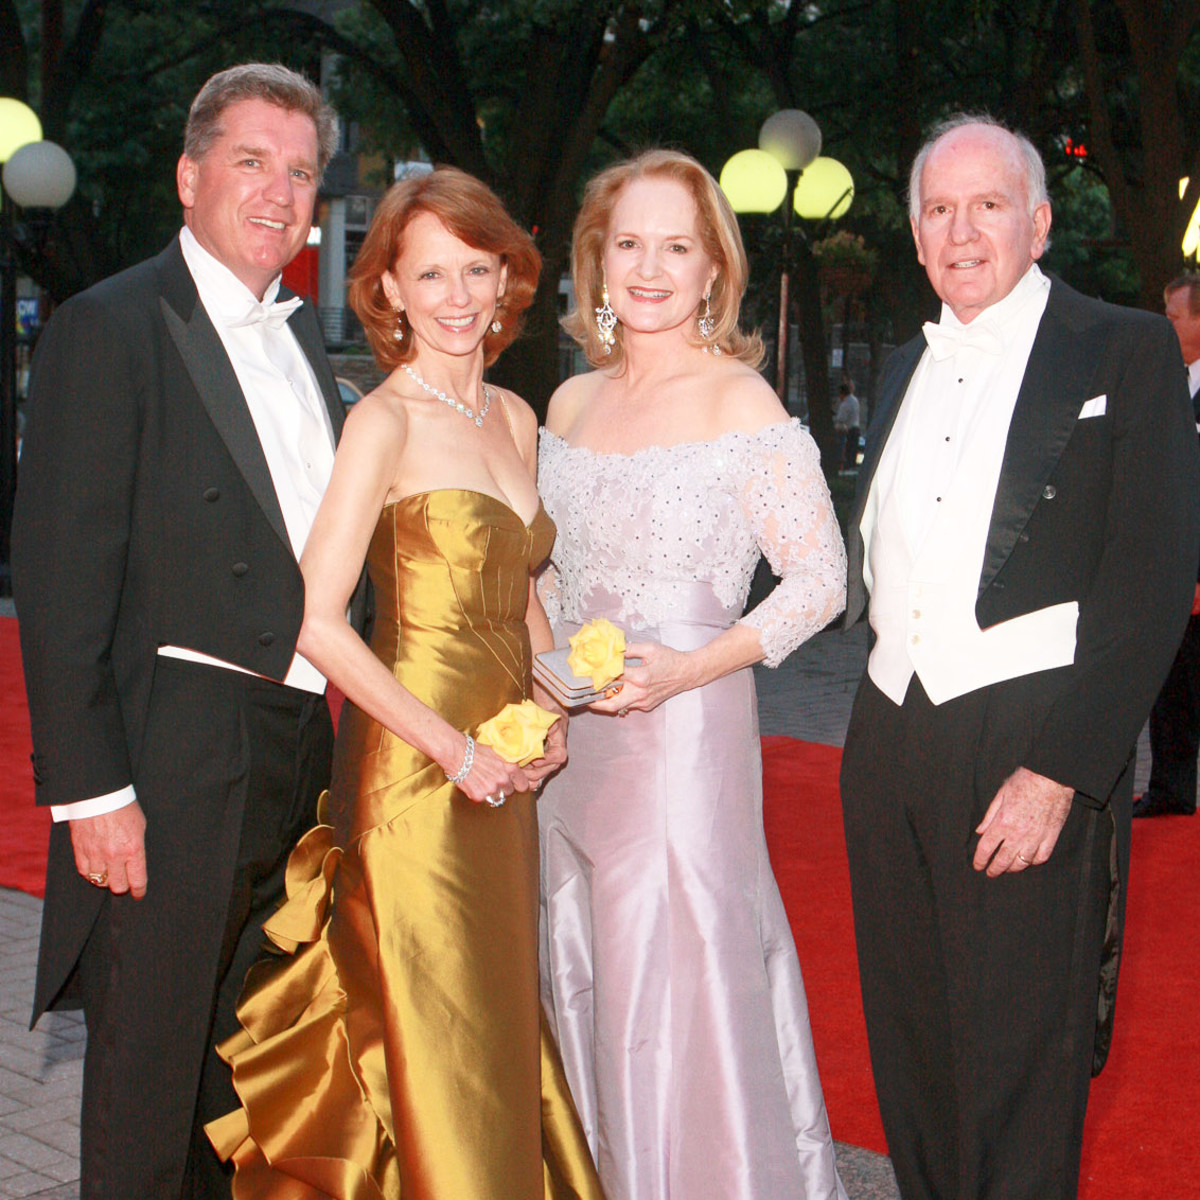 News_HGO Ball_April 2010_Patrick Gehm_Susan Krohn_Sandra Barrett_Dr. Barney Barrett